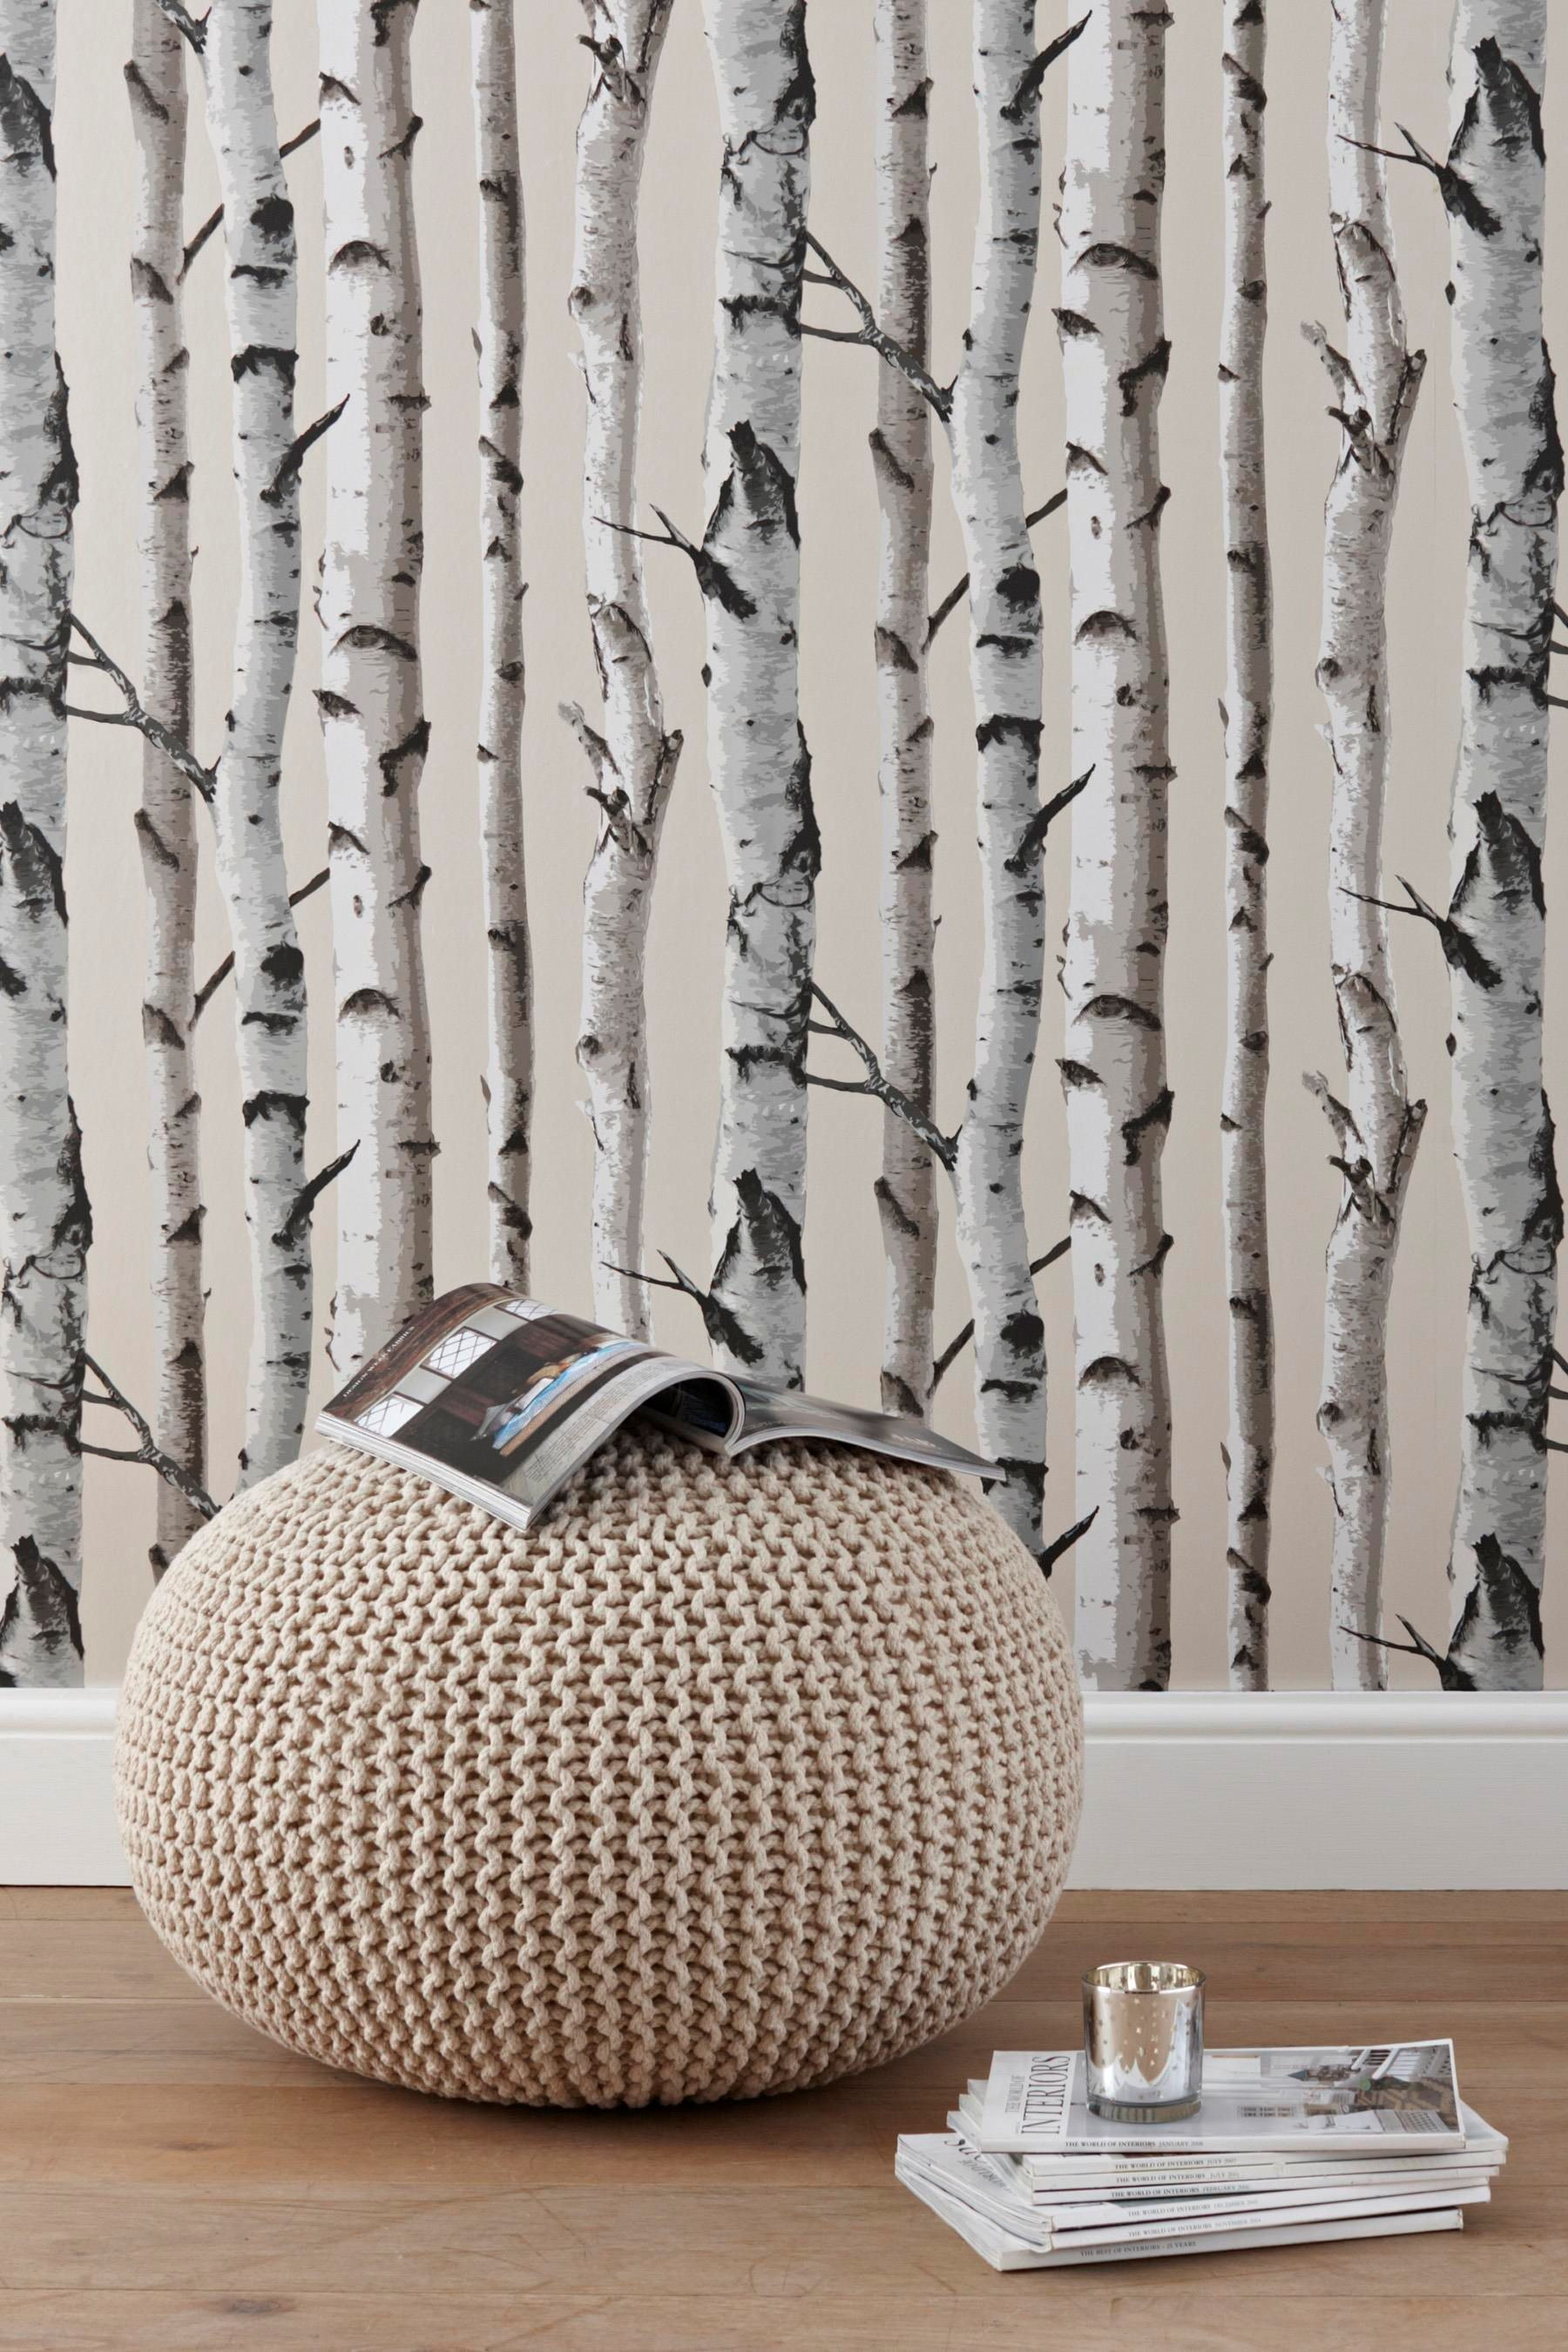 High Quality Birch Trees Wallpaper  Would Like This For The Chimney Breast. Part 11